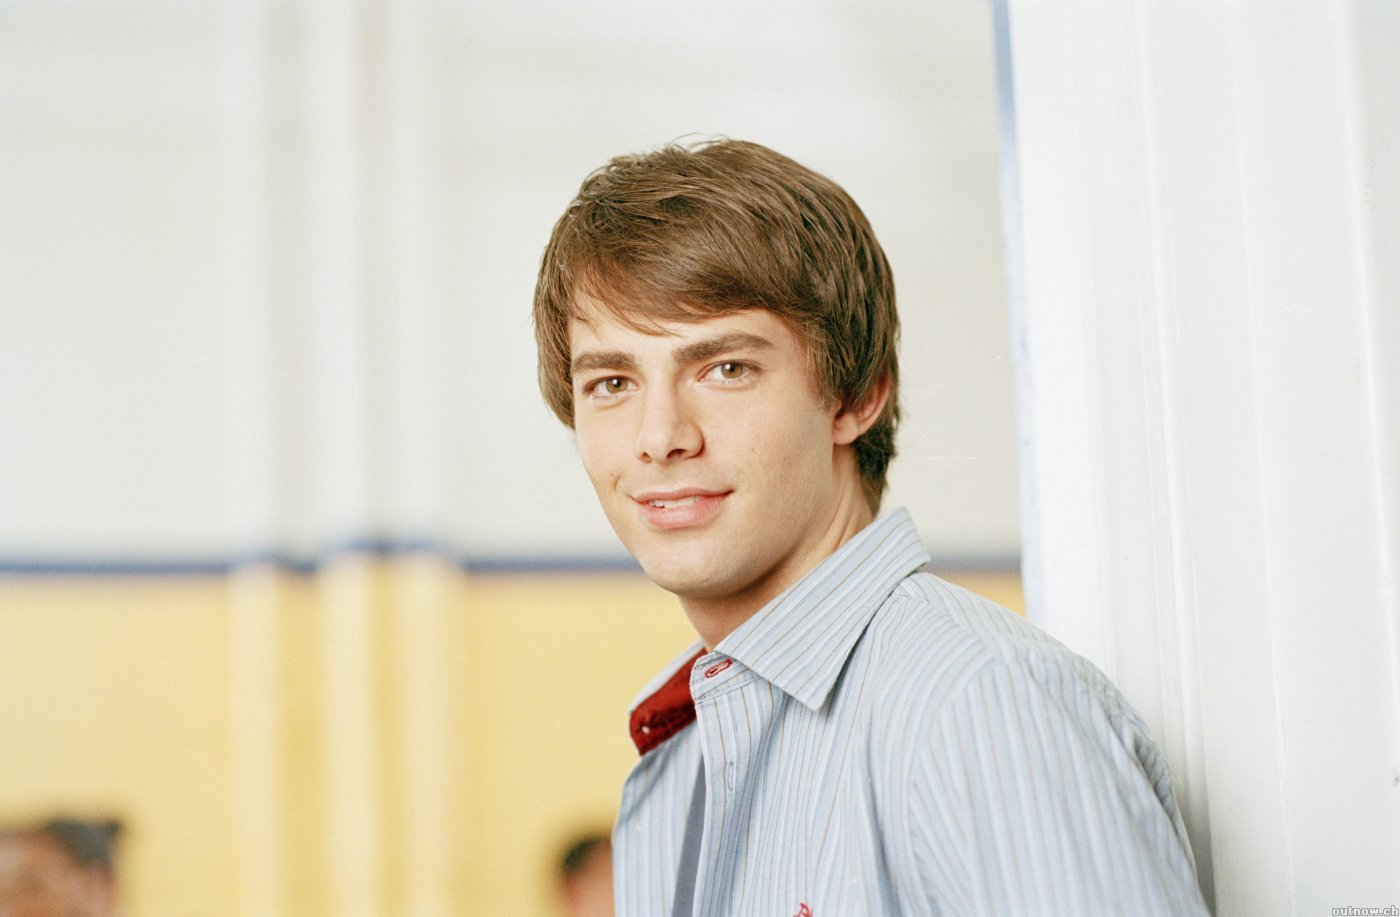 Jonathan Bennett (actor) Wallpapers Image Posted By Jonathanb